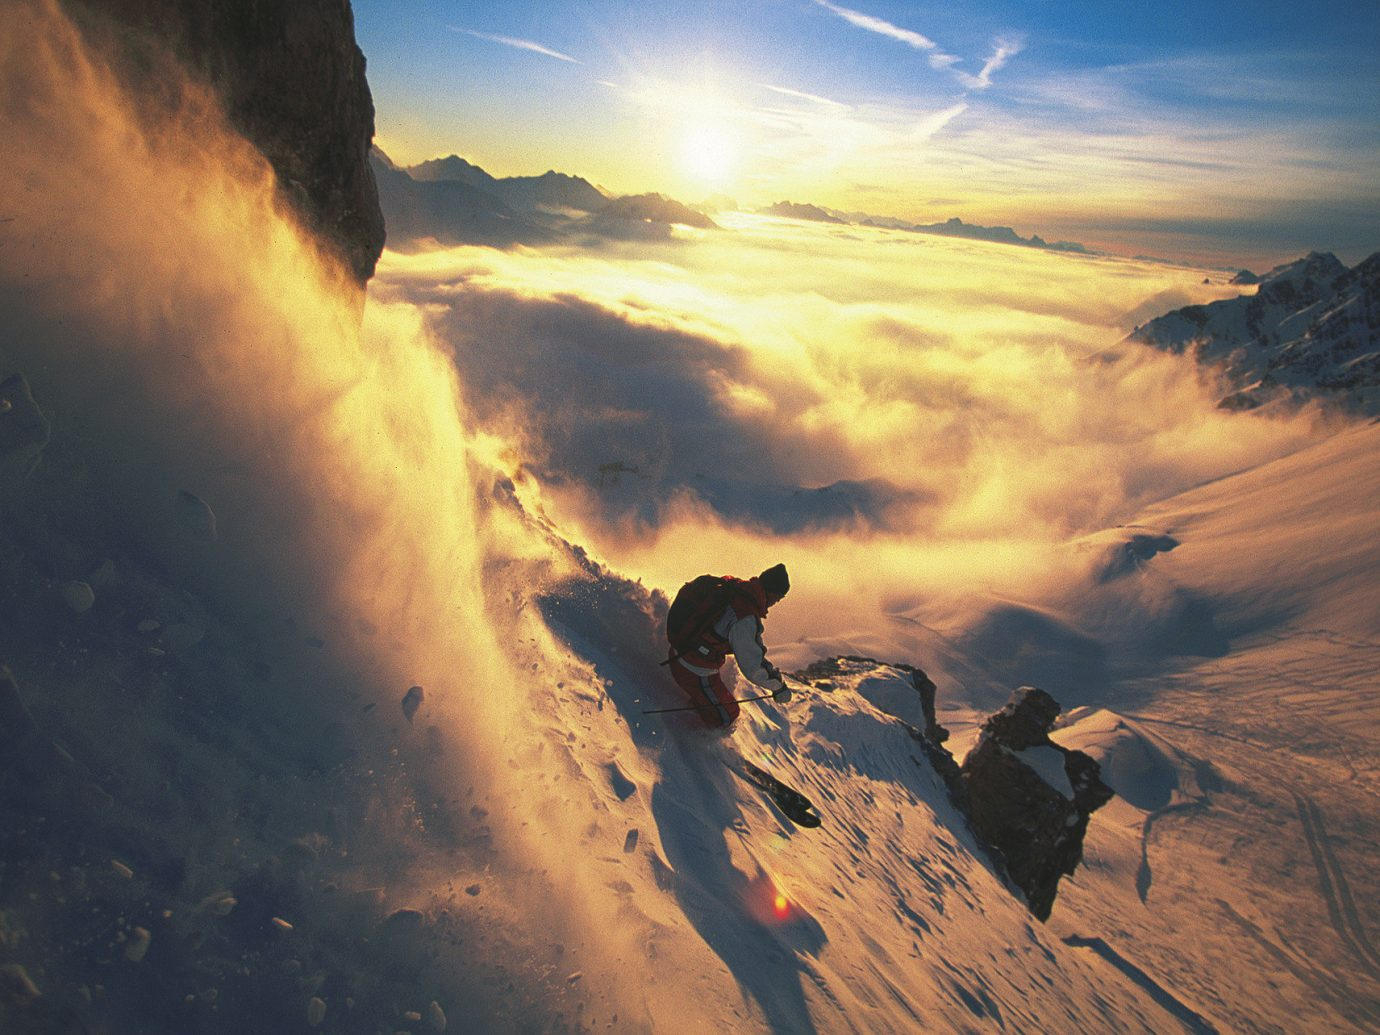 alpine skiing clouds europe mist Mountains Mountains + Skiing Nature orange sky Outdoor Activities Outdoors people snow snow capped Mountains snowboarding sunlight Sunset Trip Ideas Winter sky outdoor mountainous landforms cloud mountain atmospheric phenomenon sunrise atmosphere horizon dawn morning atmosphere of earth hill Sun mountain range evening dusk wave meteorological phenomenon day